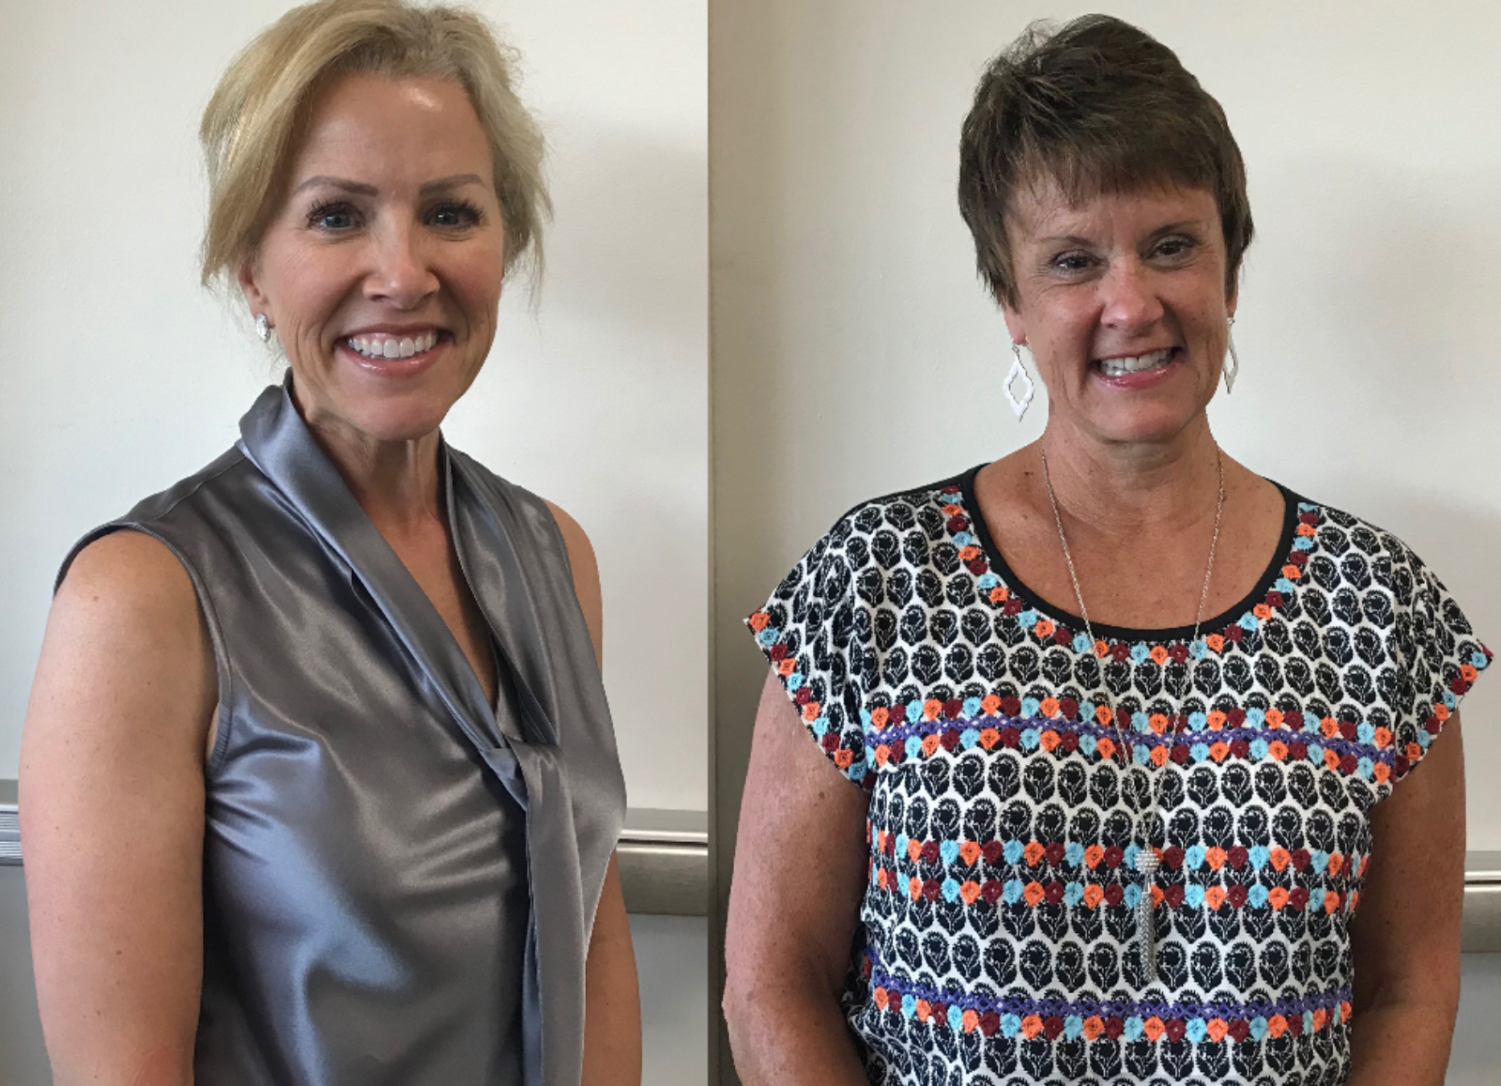 Board Members Lisa Hessel (left) and Casey Rooney (right) joined the Board of Education this year.